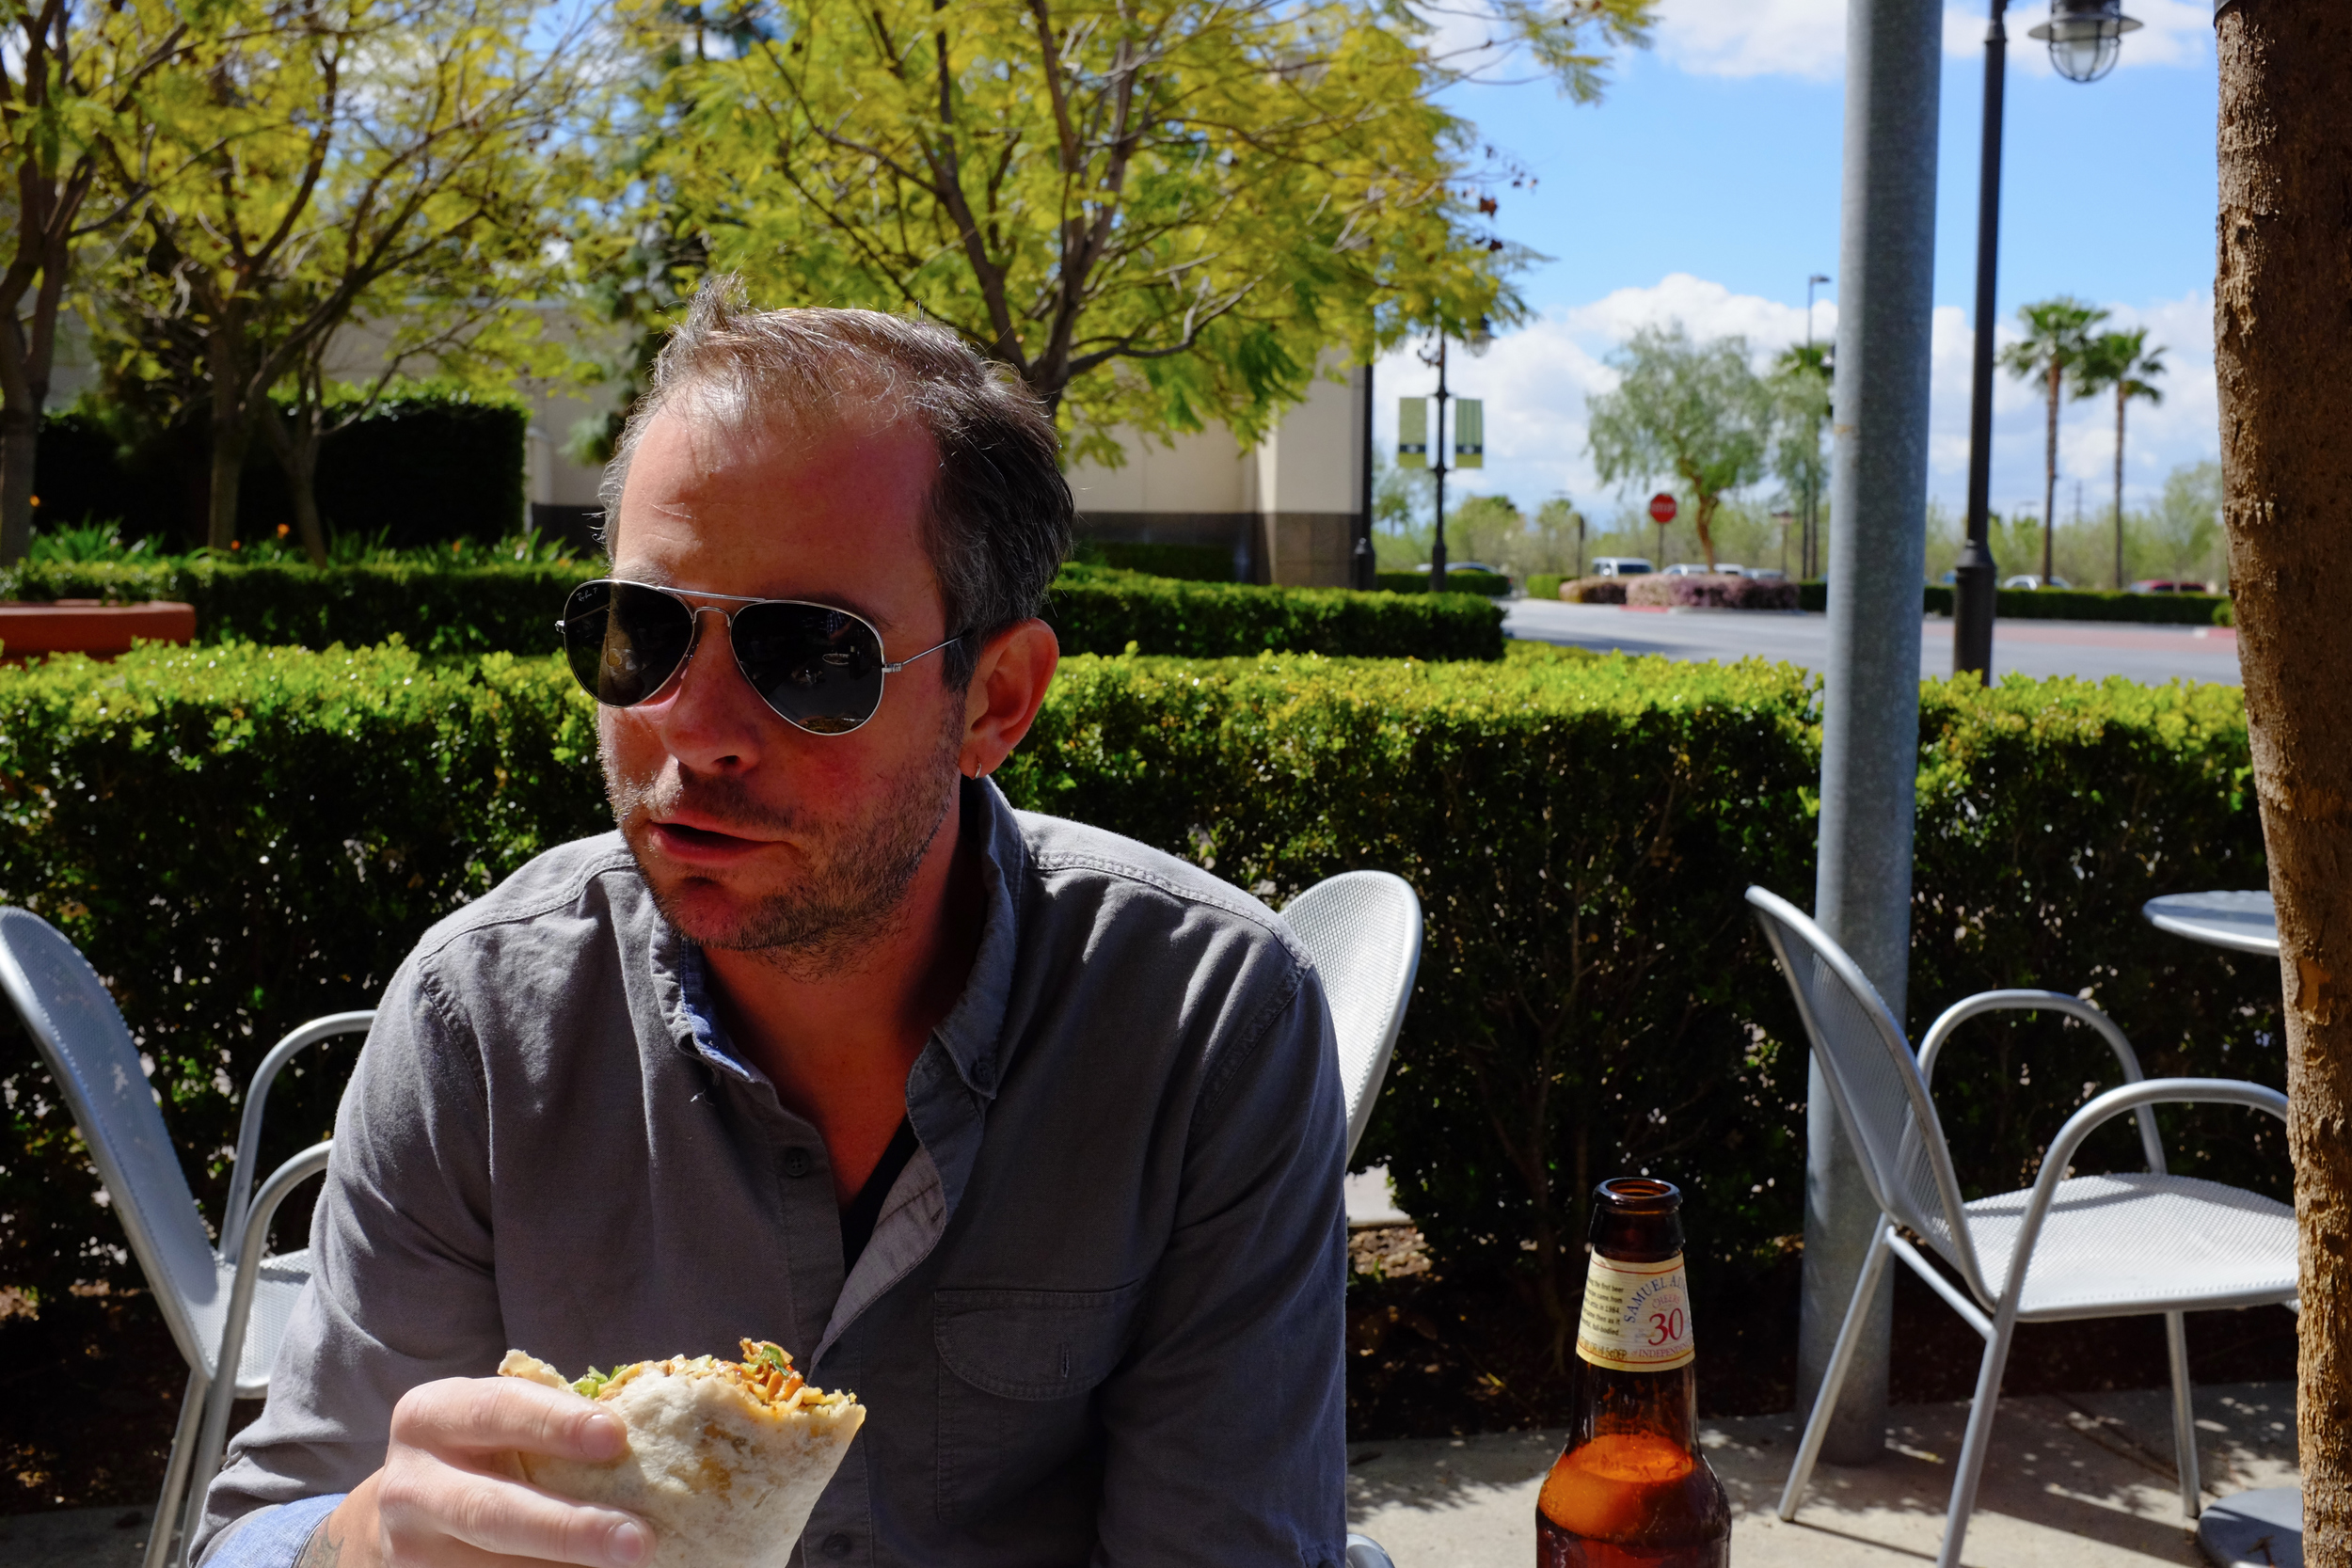 Adam enjoys a Chipotle burrito on what turned out to be a pretty cold day by So Cal standards